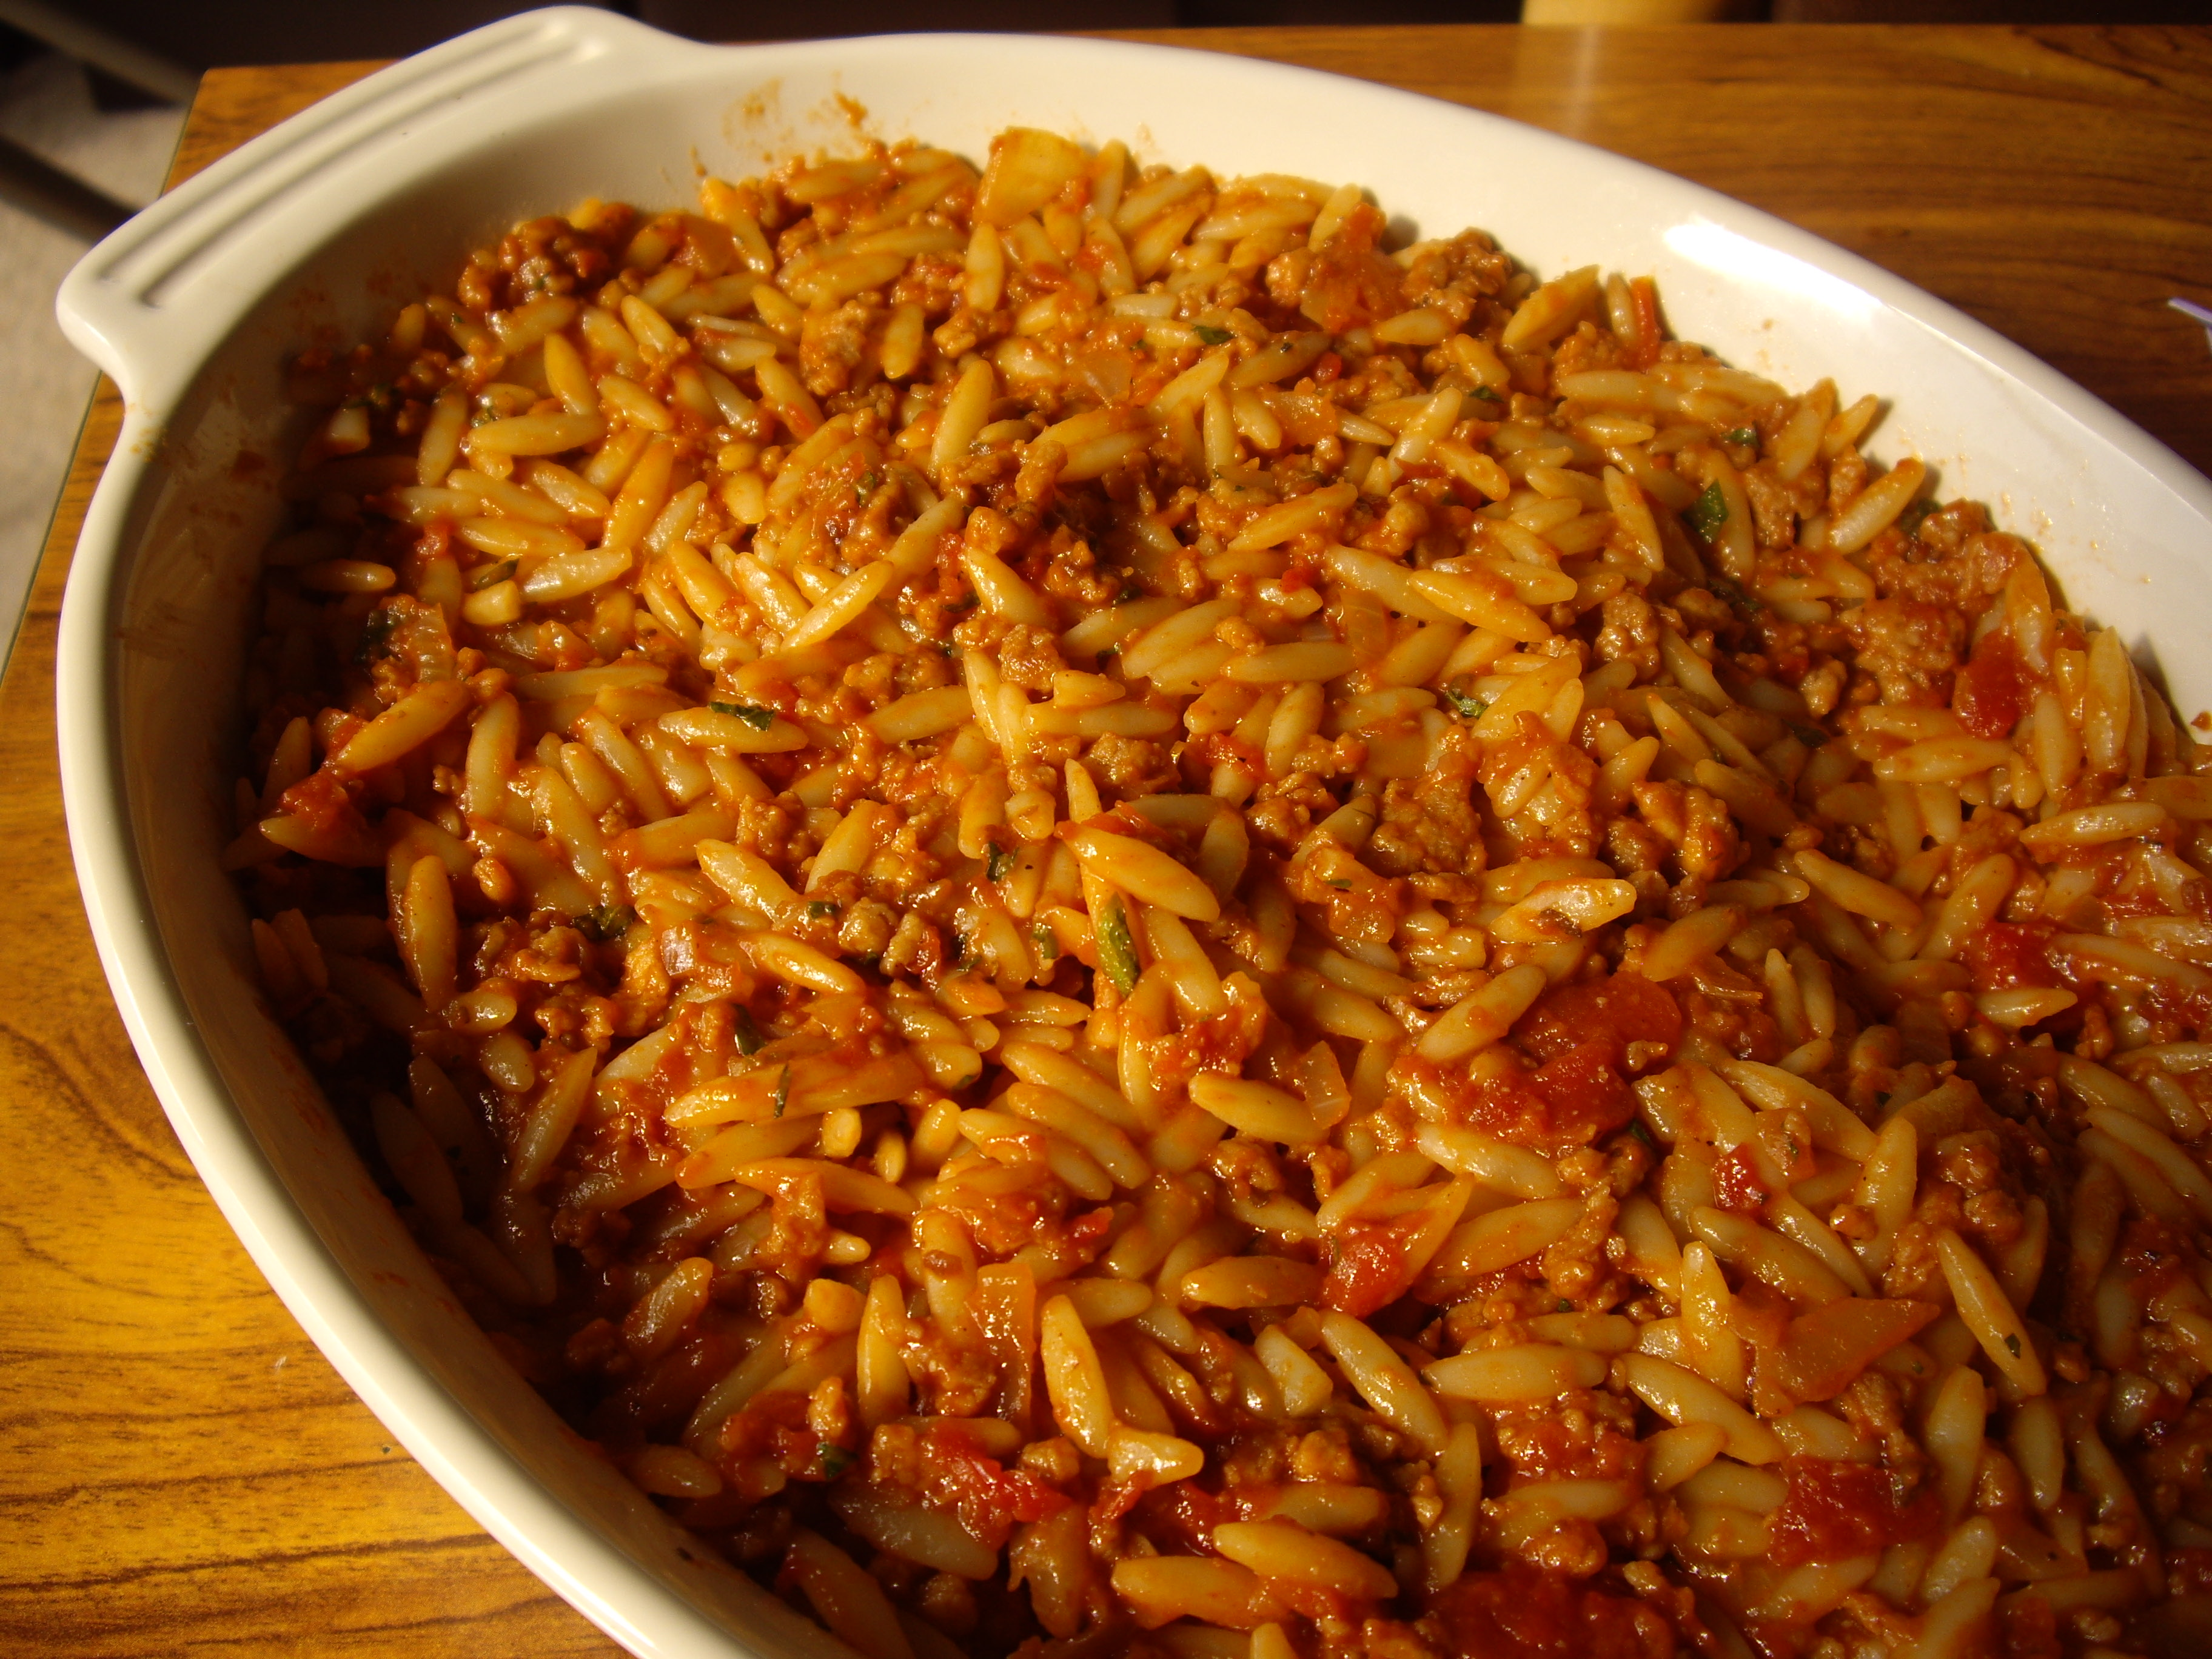 The orzo, tomatoes and beef before being topped with a cheese sauce.